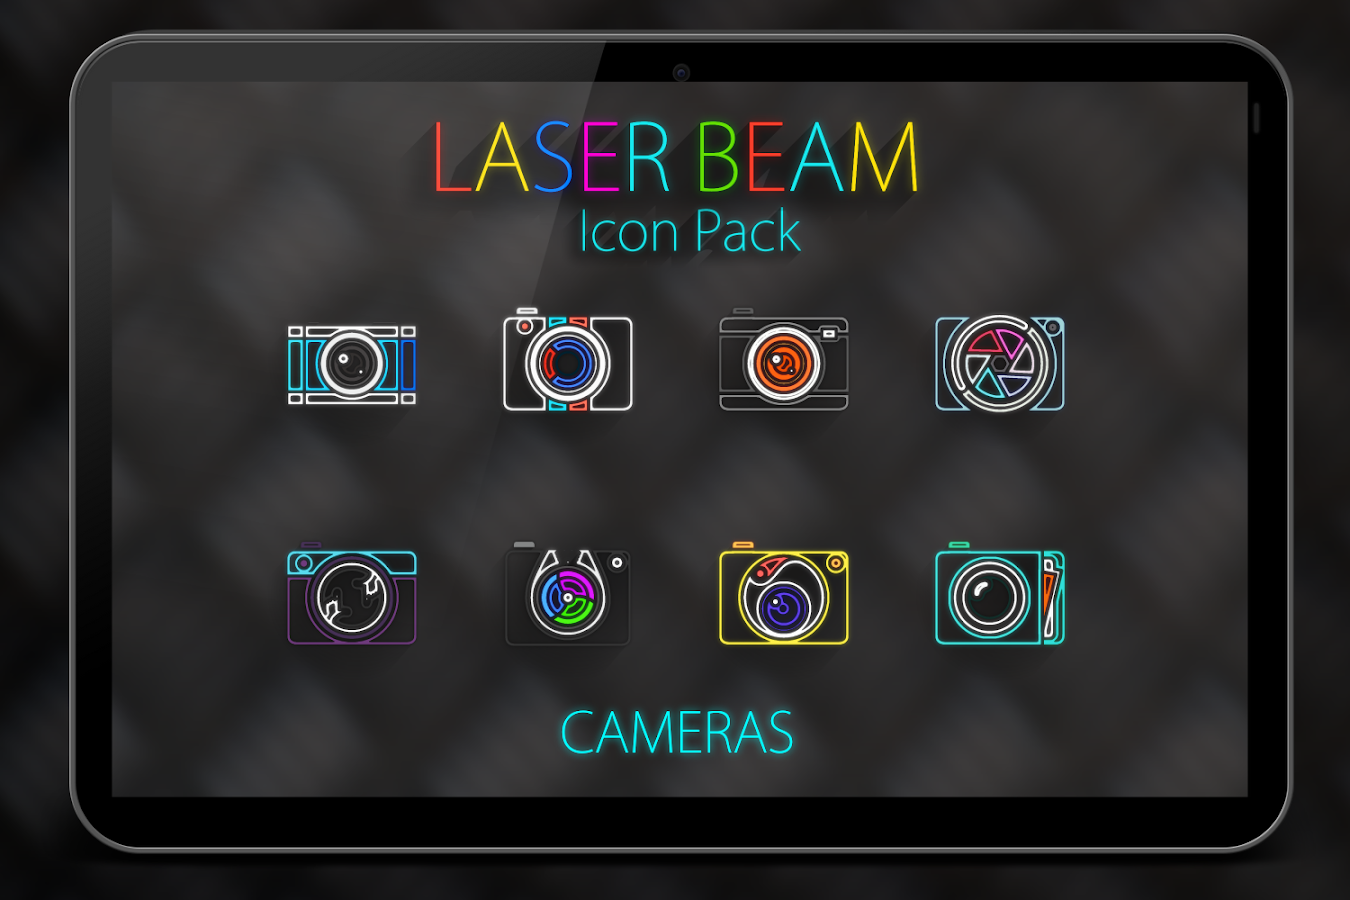 Laser Beam Icon Pack Screenshot 10